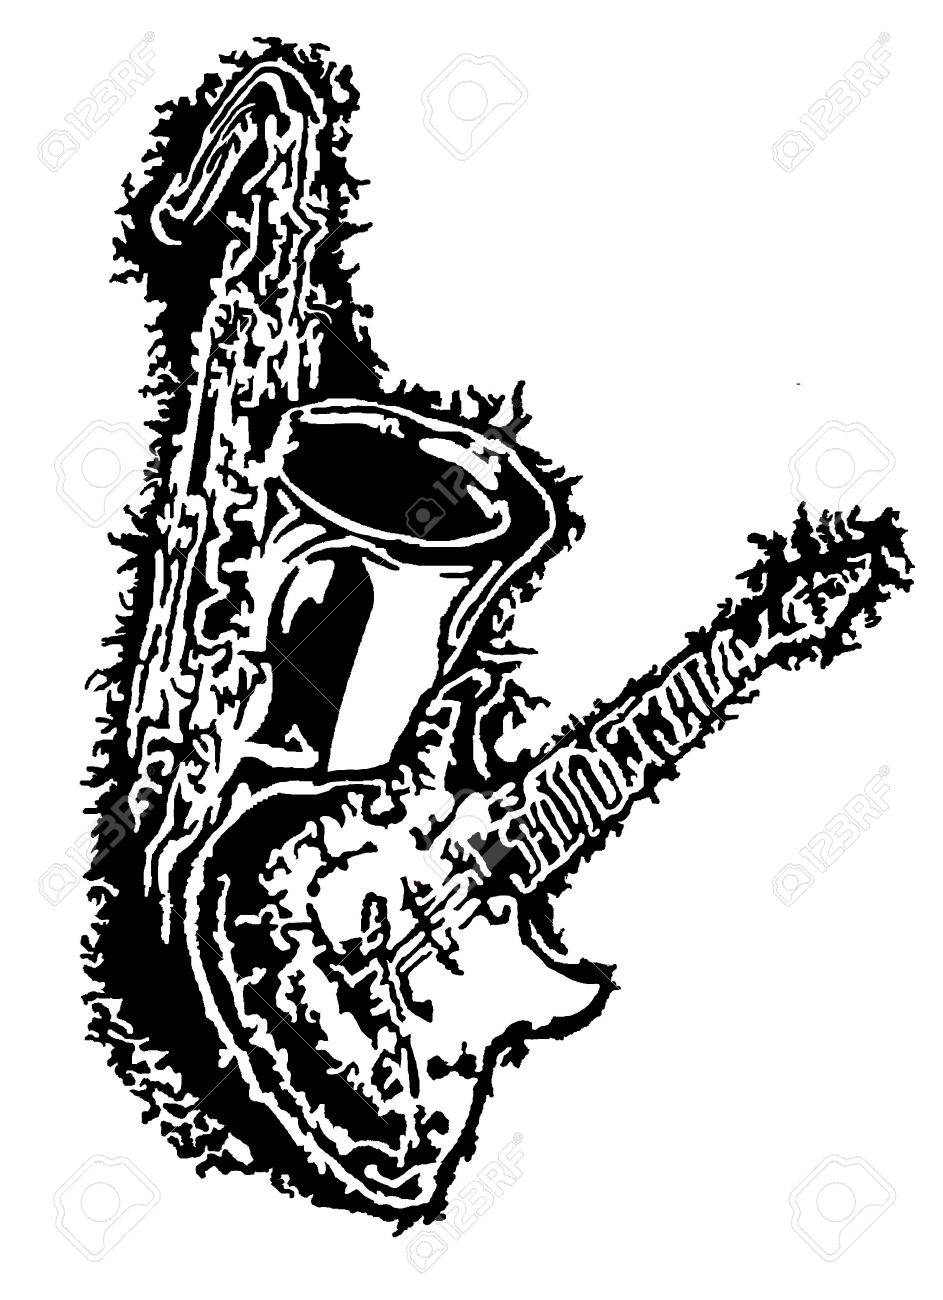 Tenor Saxophone Drawing at GetDrawings com | Free for personal use